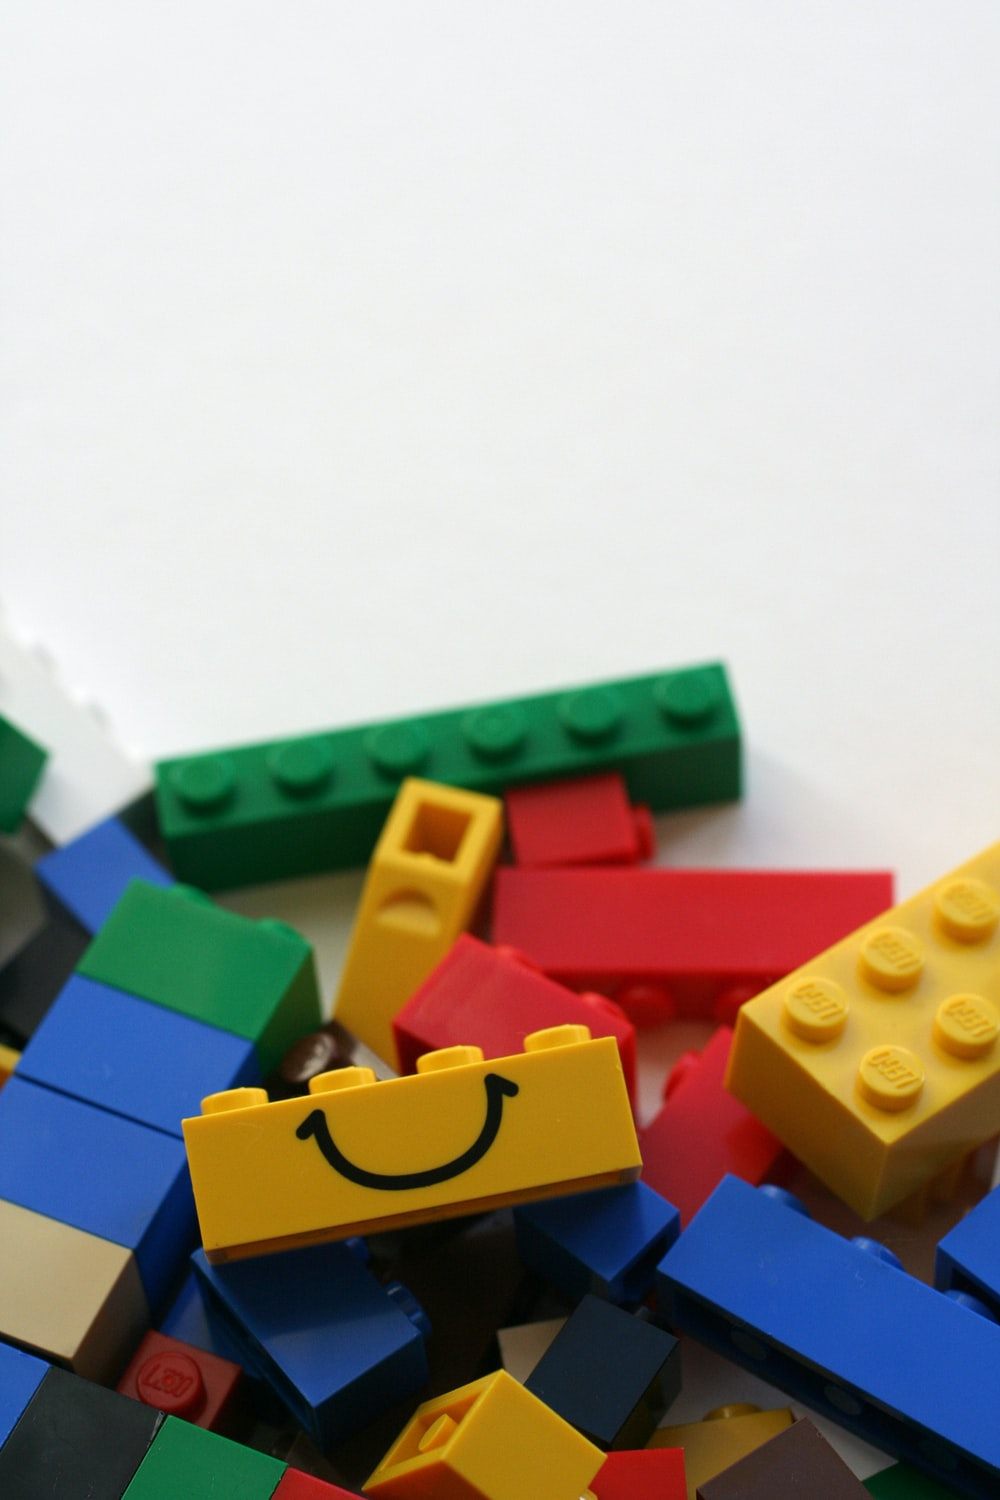 closeup photo of assorted-color LEGO blocks